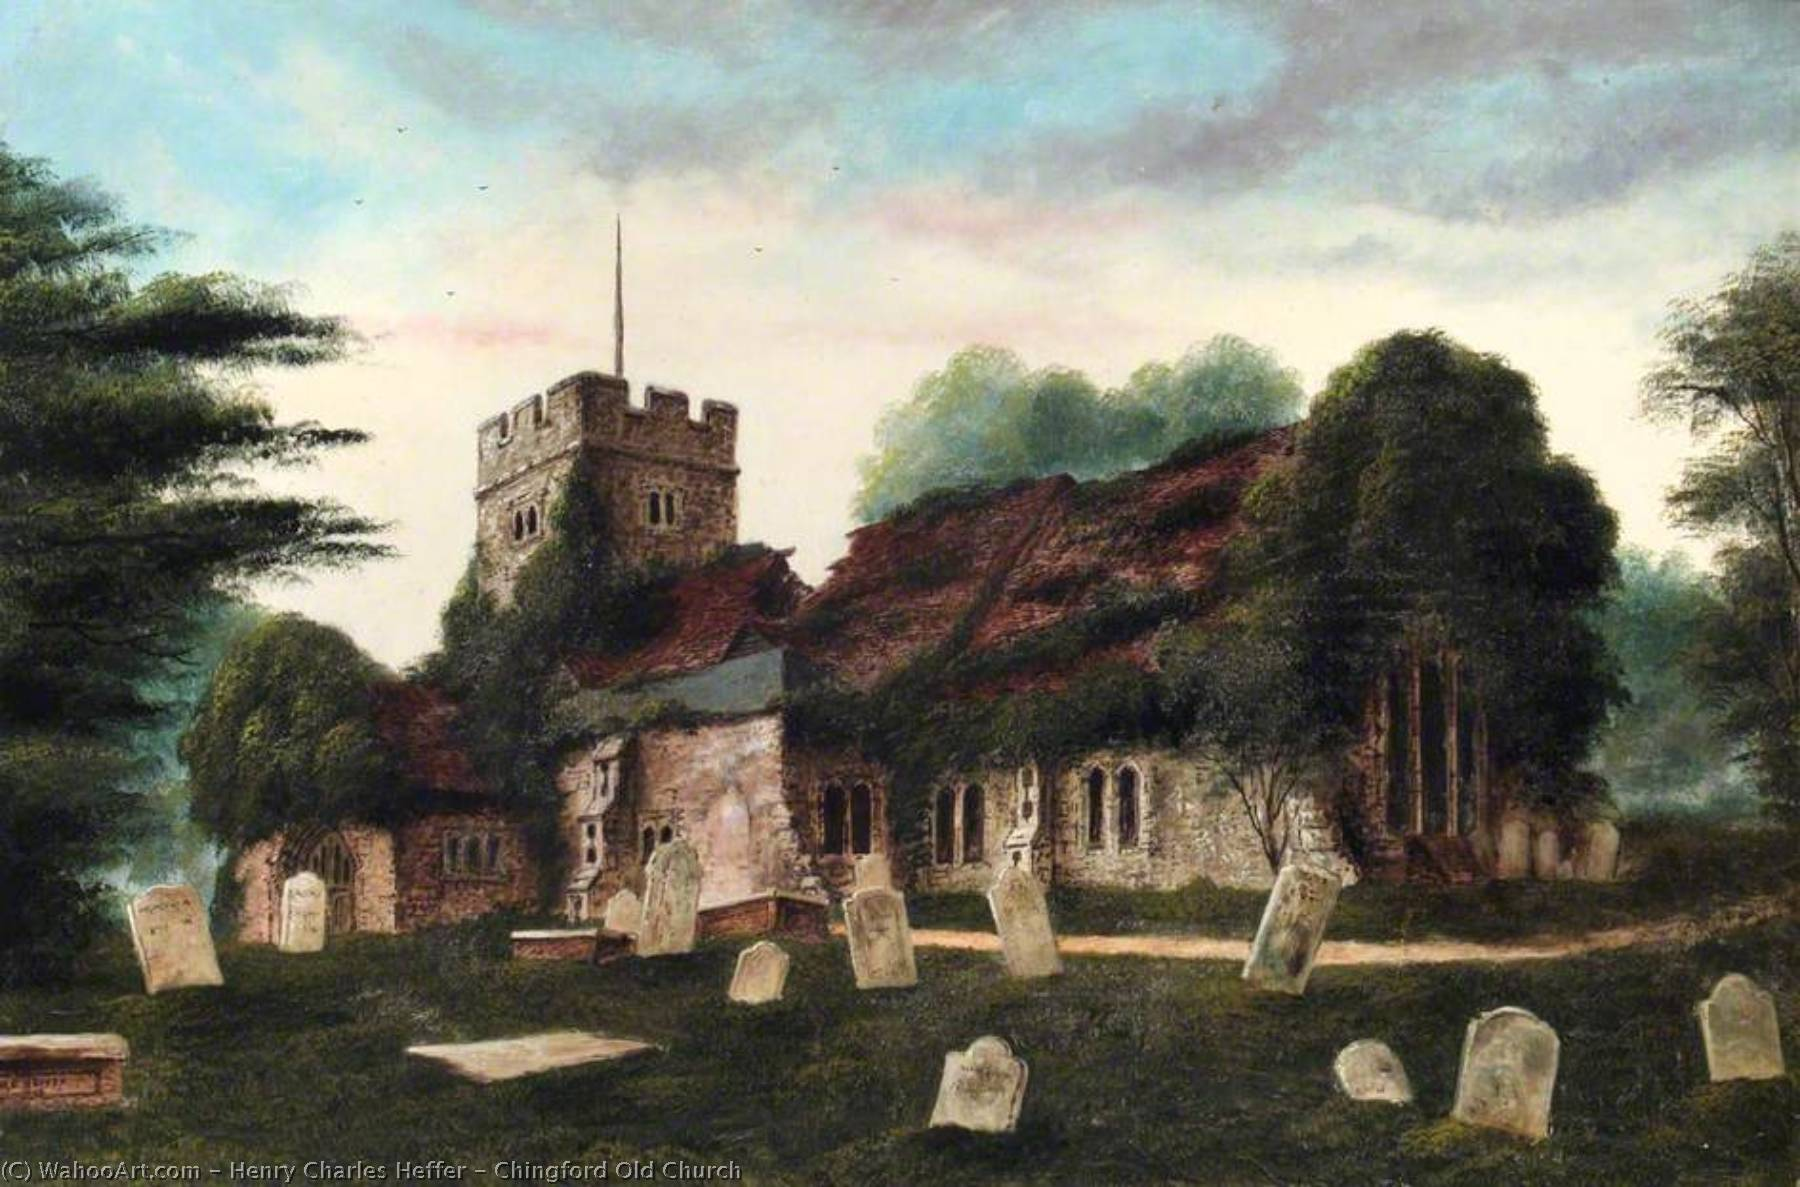 Buy Museum Art Reproductions | Chingford Old Church, 1903 by Henry Charles Heffer | WahooArt.com